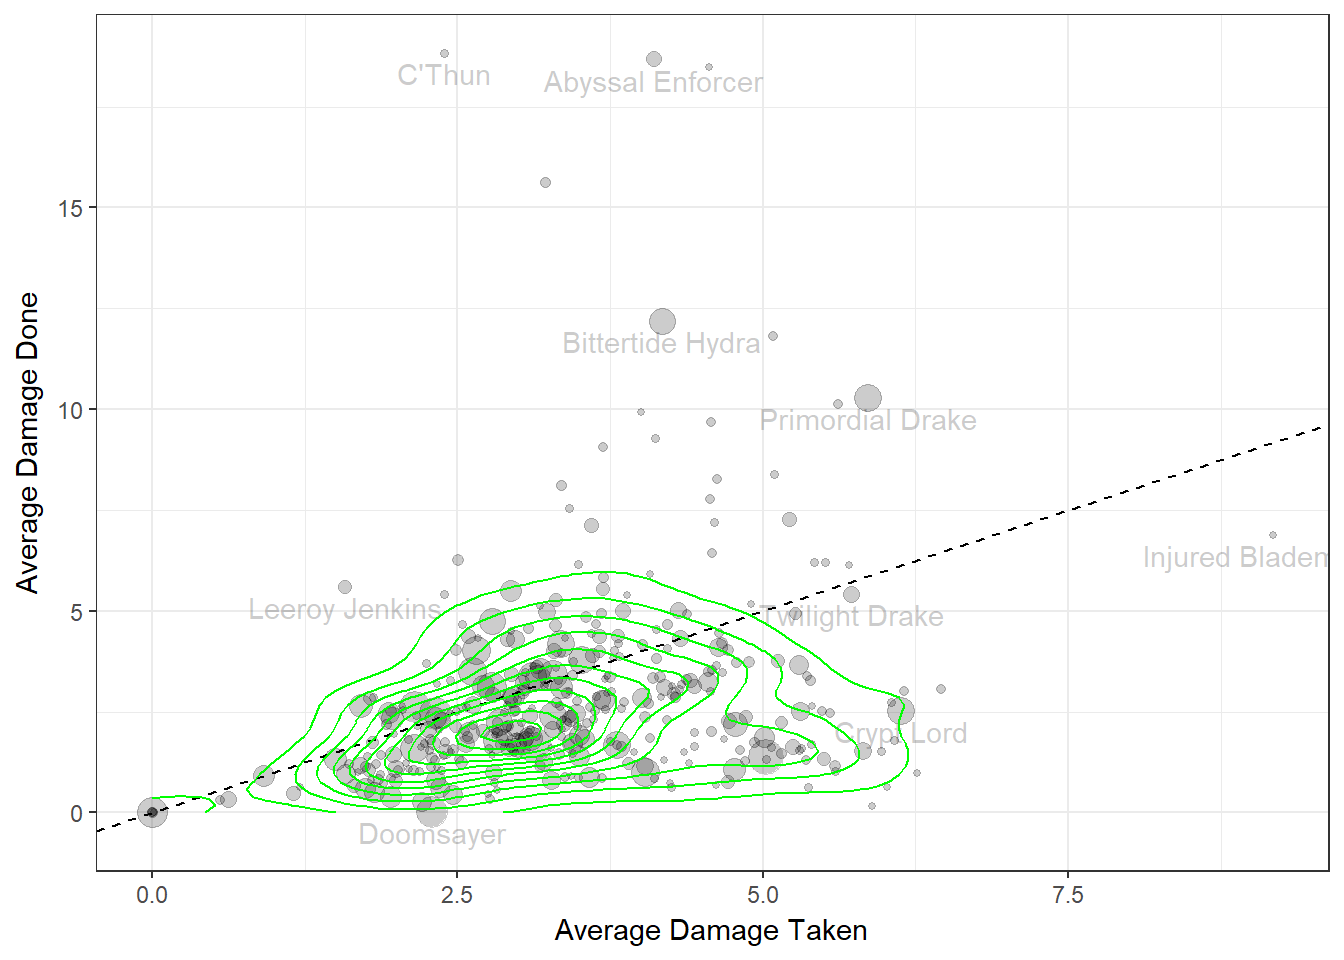 Figure 1: Average damage done vs. damage received for minions. Density contours indicate the typical bounds of these parameters (90% of minions fall within the outer contour).